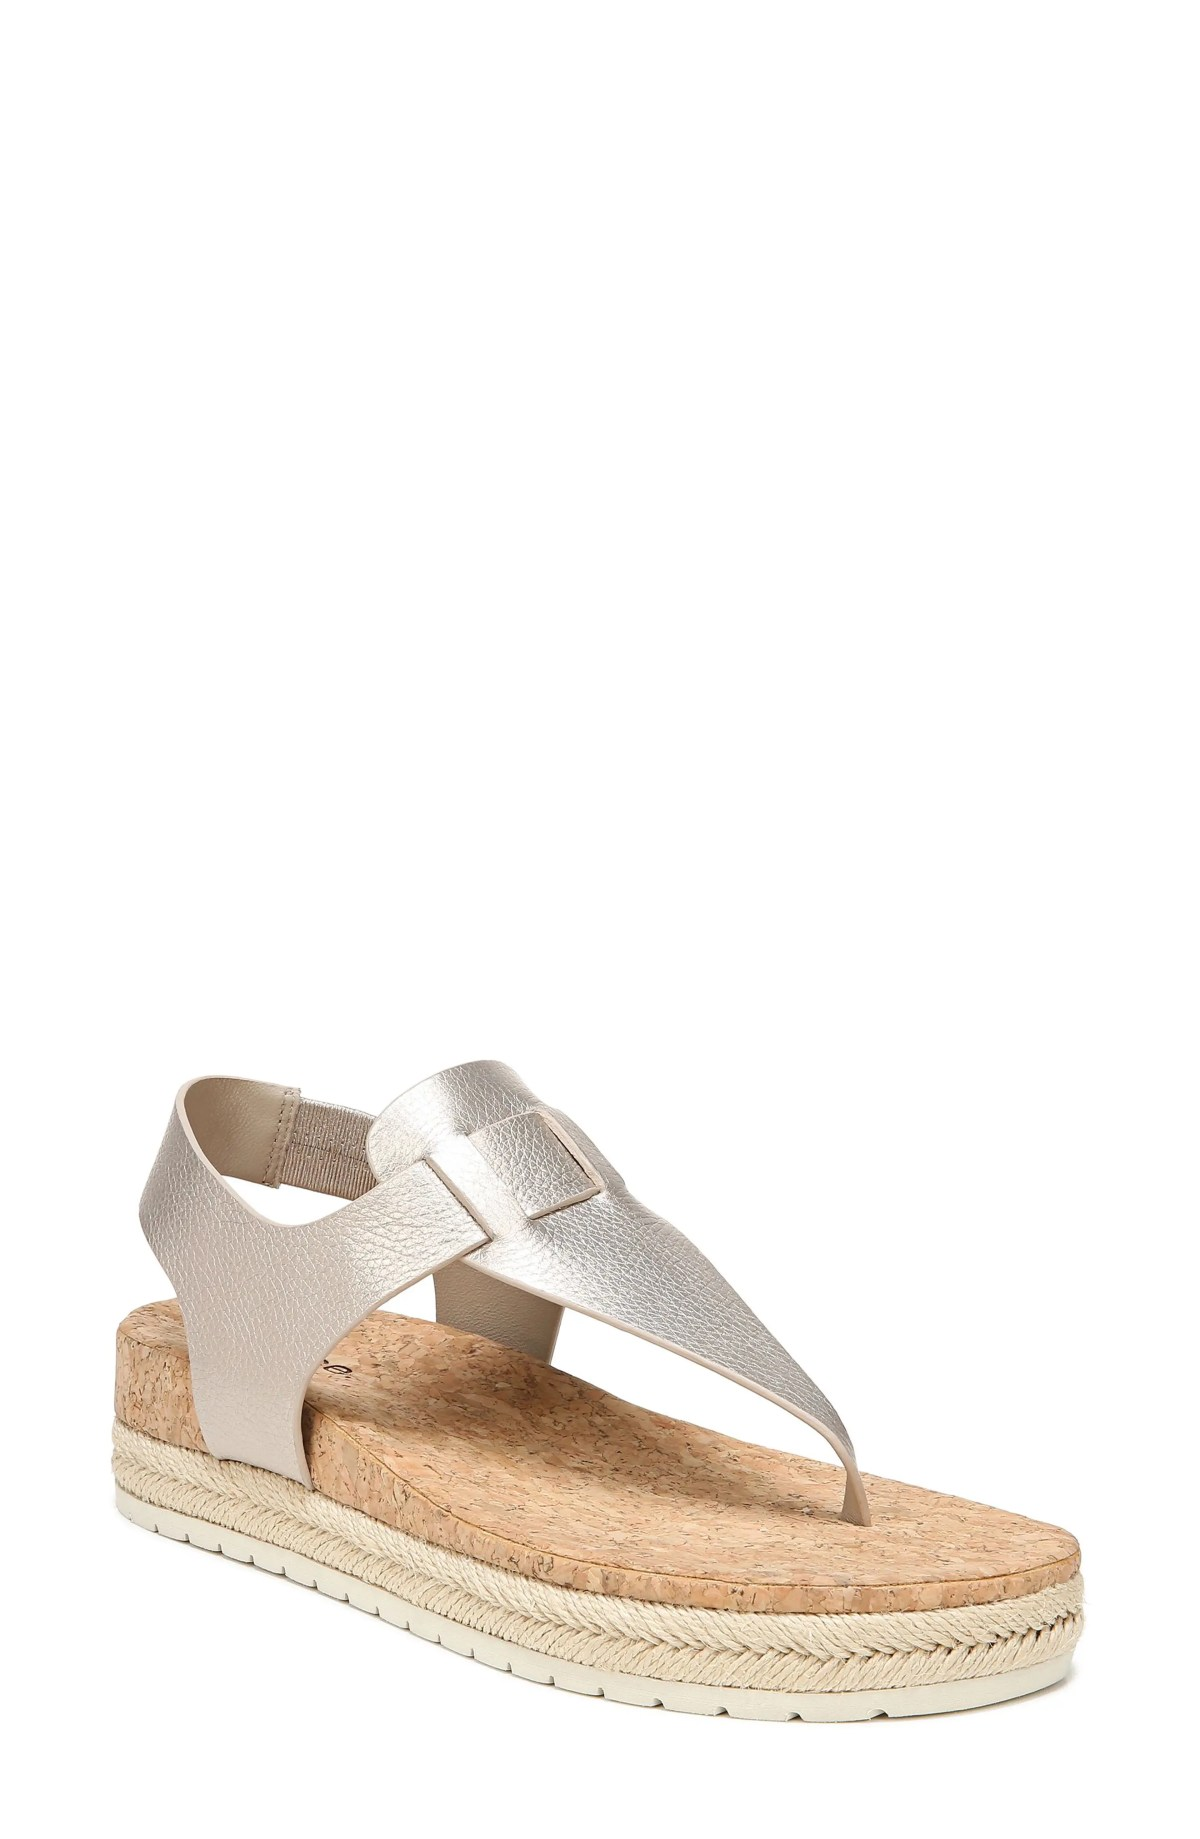 VINCE Flint Espadrille Thong Sandal, Main, color, MOONSTONE